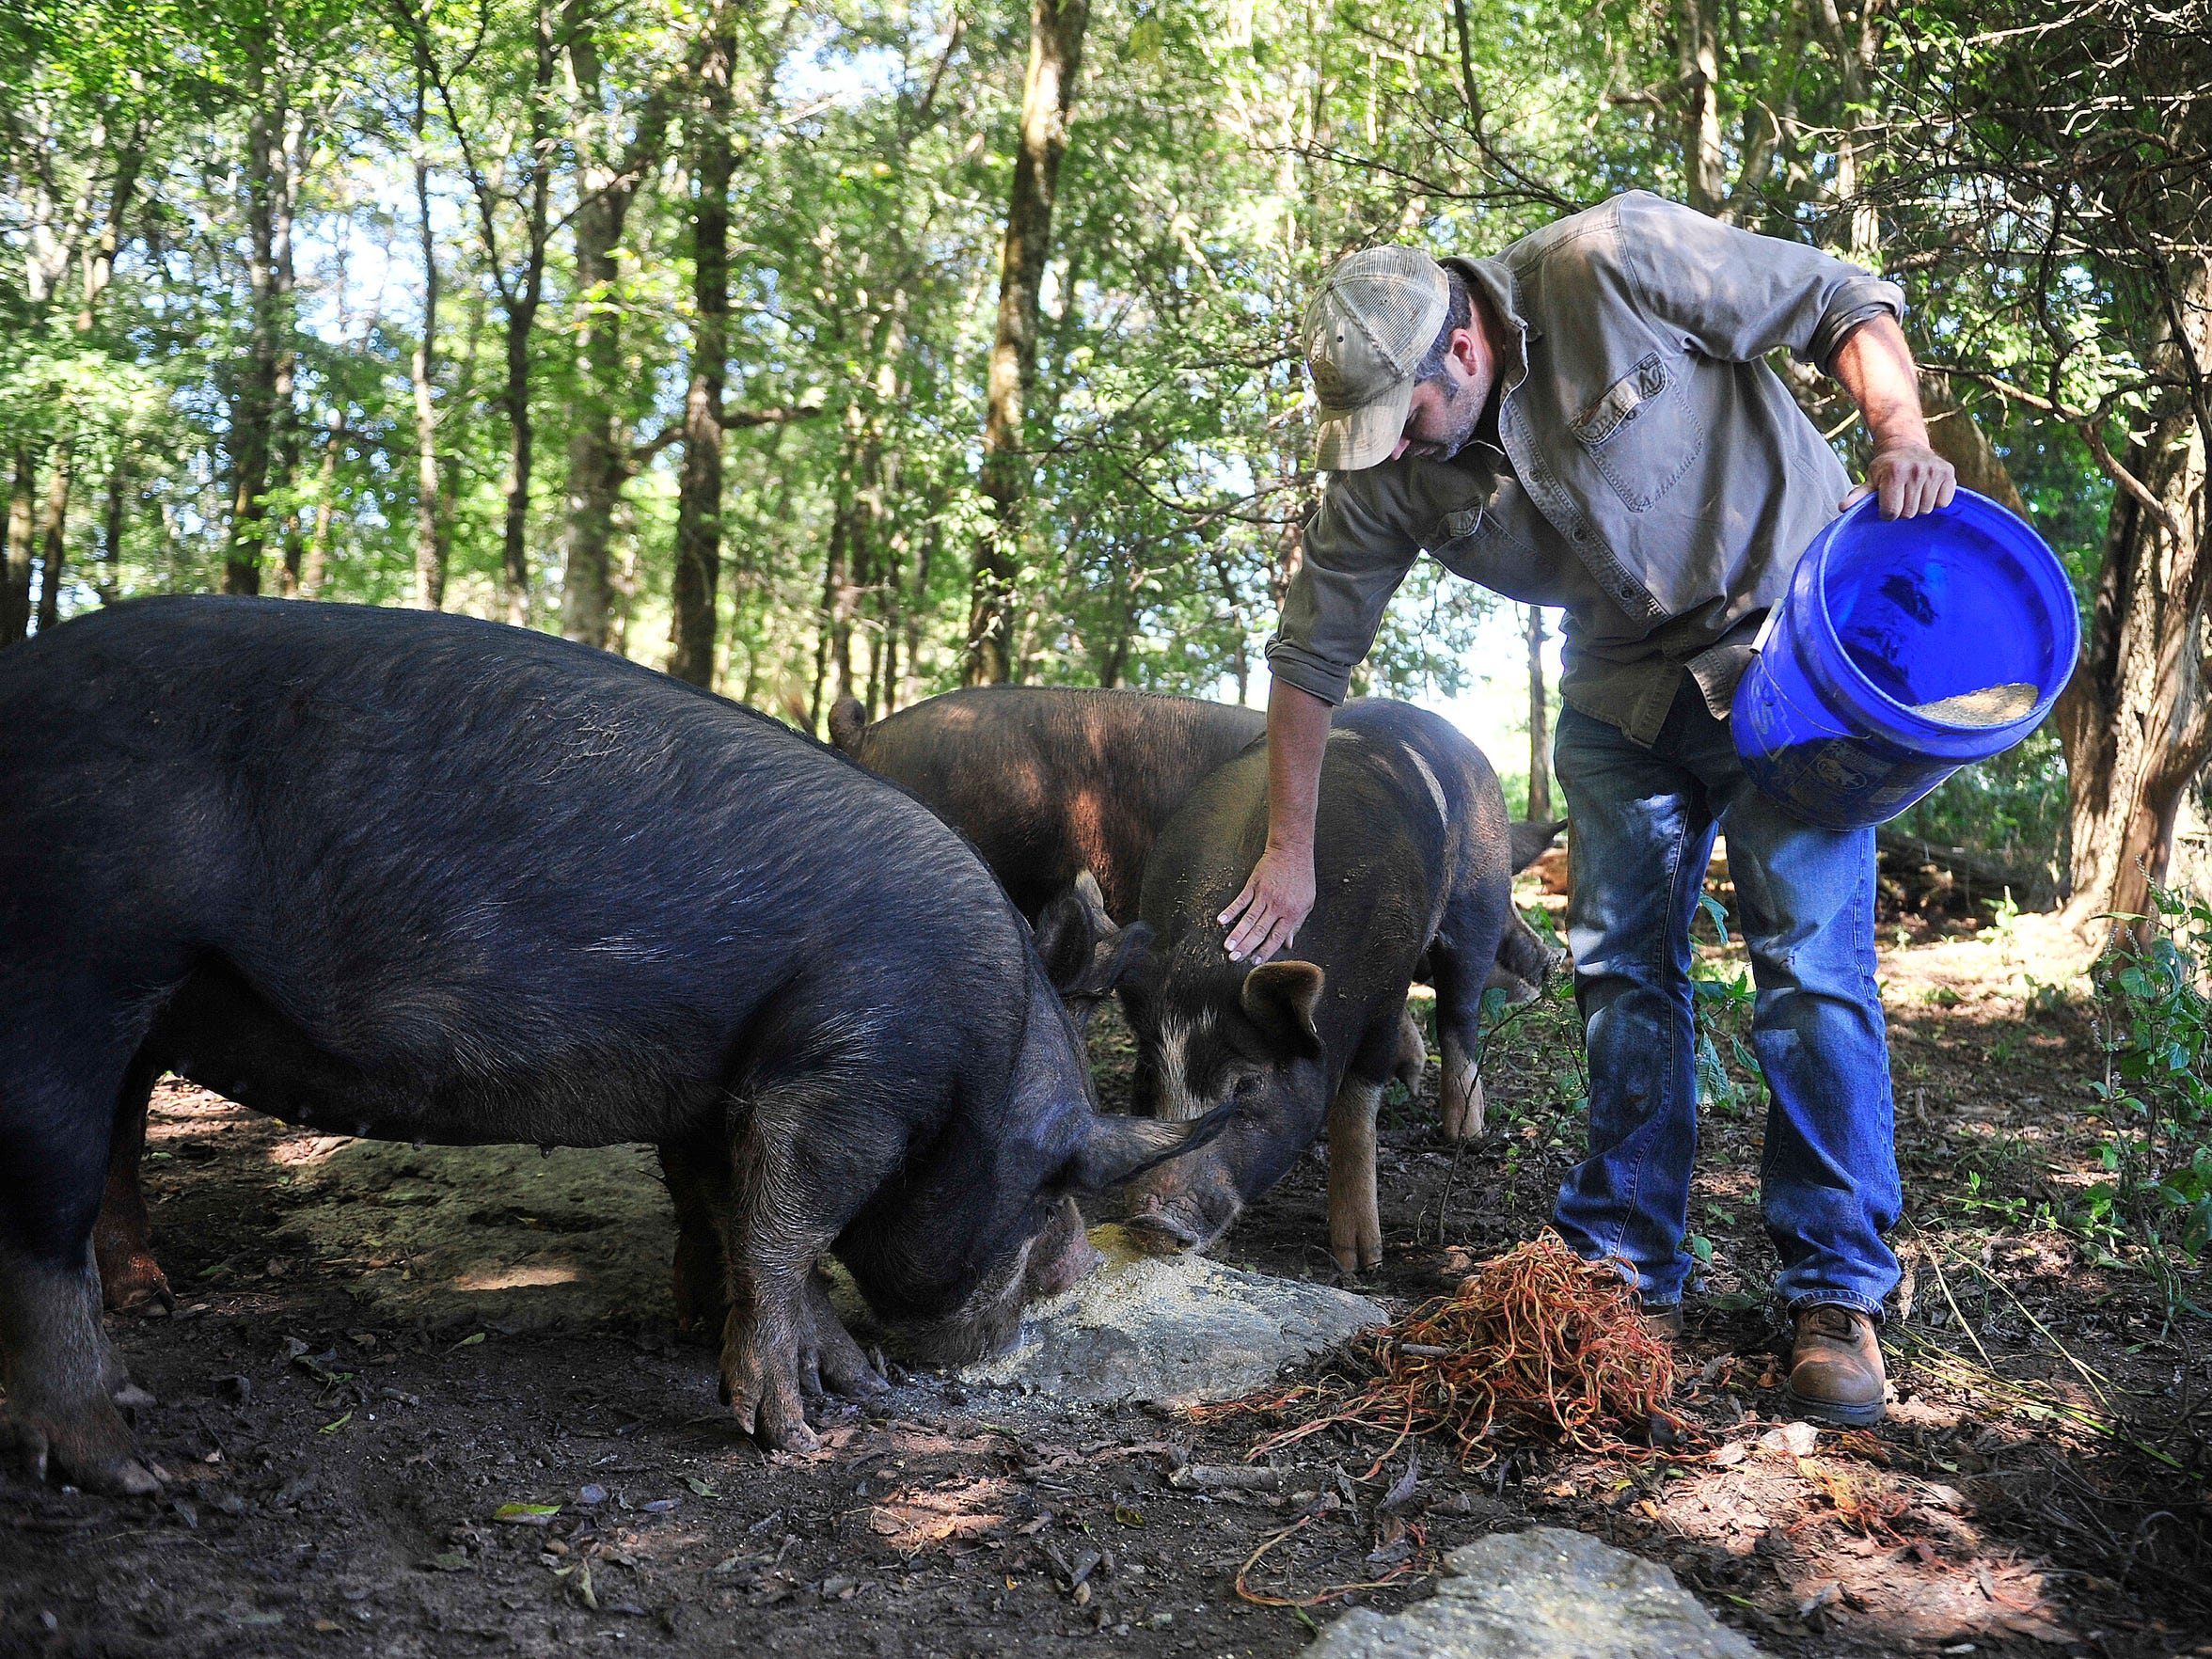 Adam Deal feeds his Burkshire pigs for his company Nashville Cattle Co. Farm in Shelbyville, Tenn.